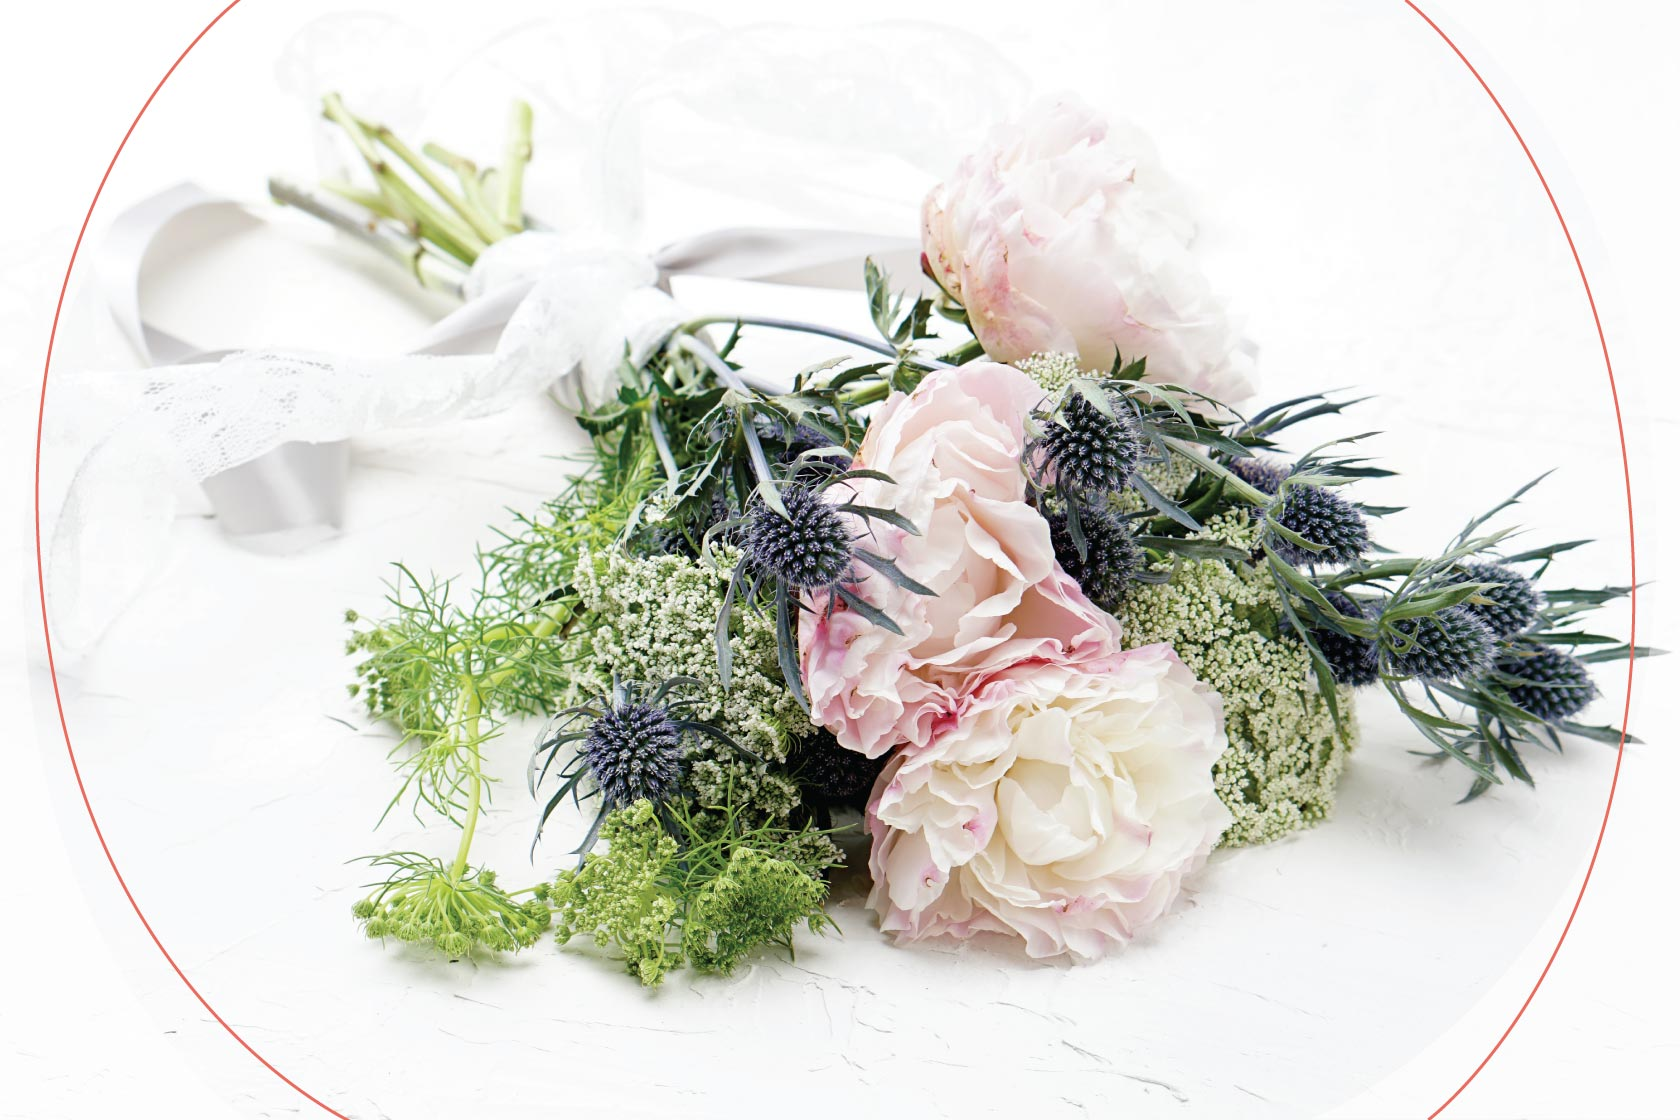 DIY Tutorial: How To Create A DIY Wedding Bouquet In 6